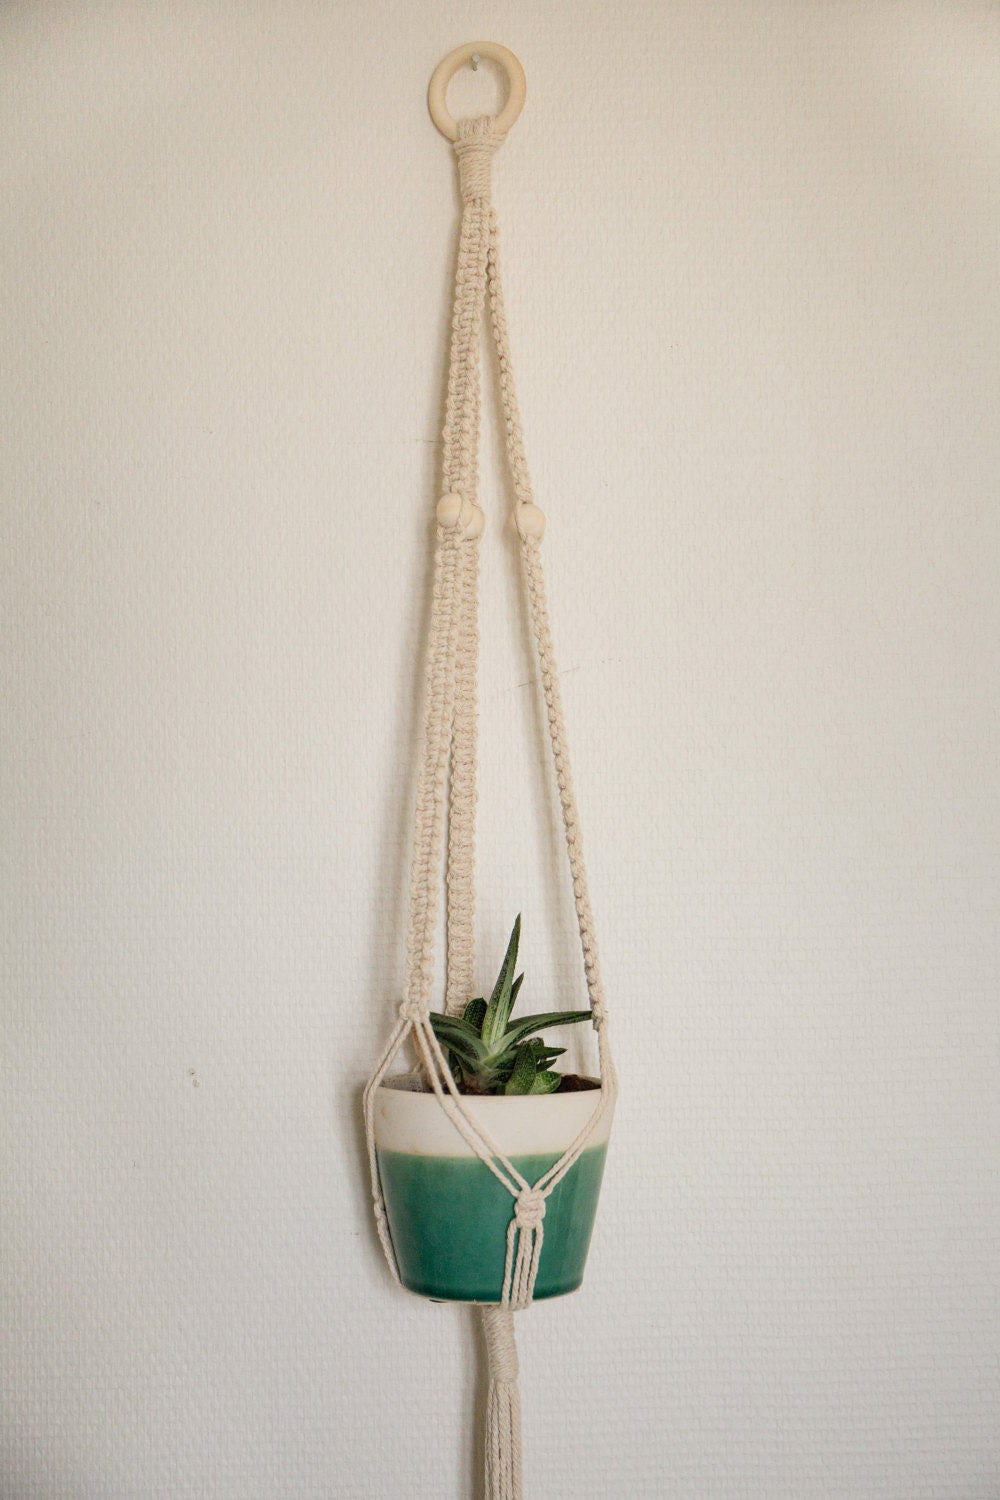 suspension macram pour plante macrame plant hanger. Black Bedroom Furniture Sets. Home Design Ideas